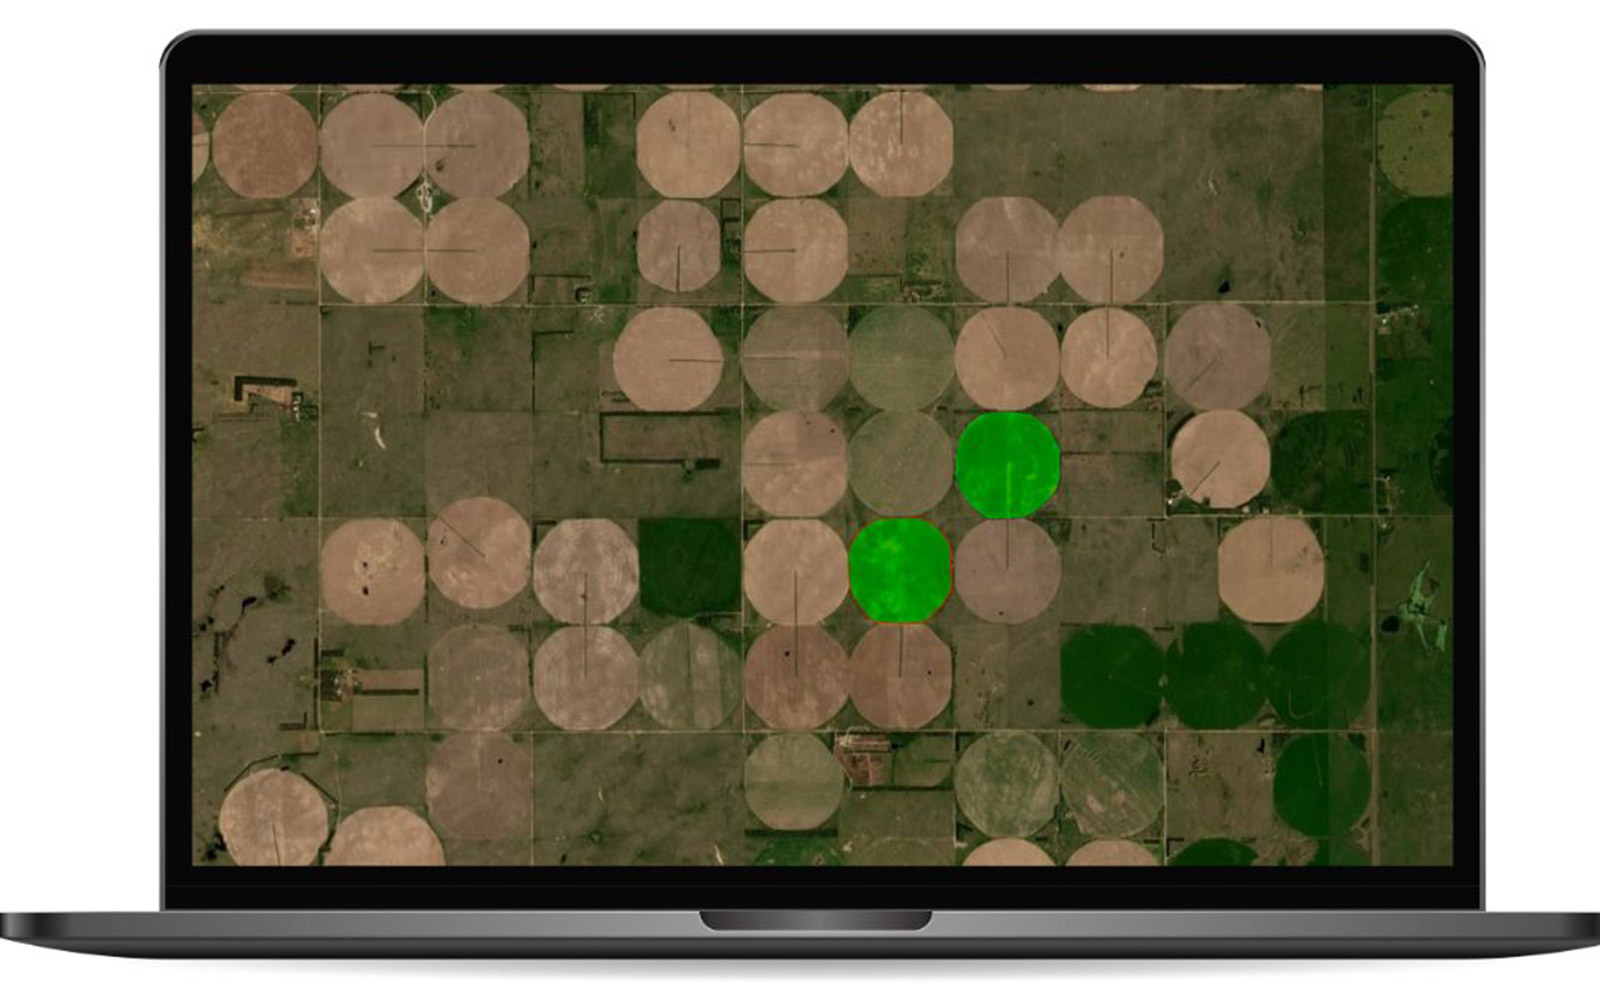 Precision agriculture insights on field level